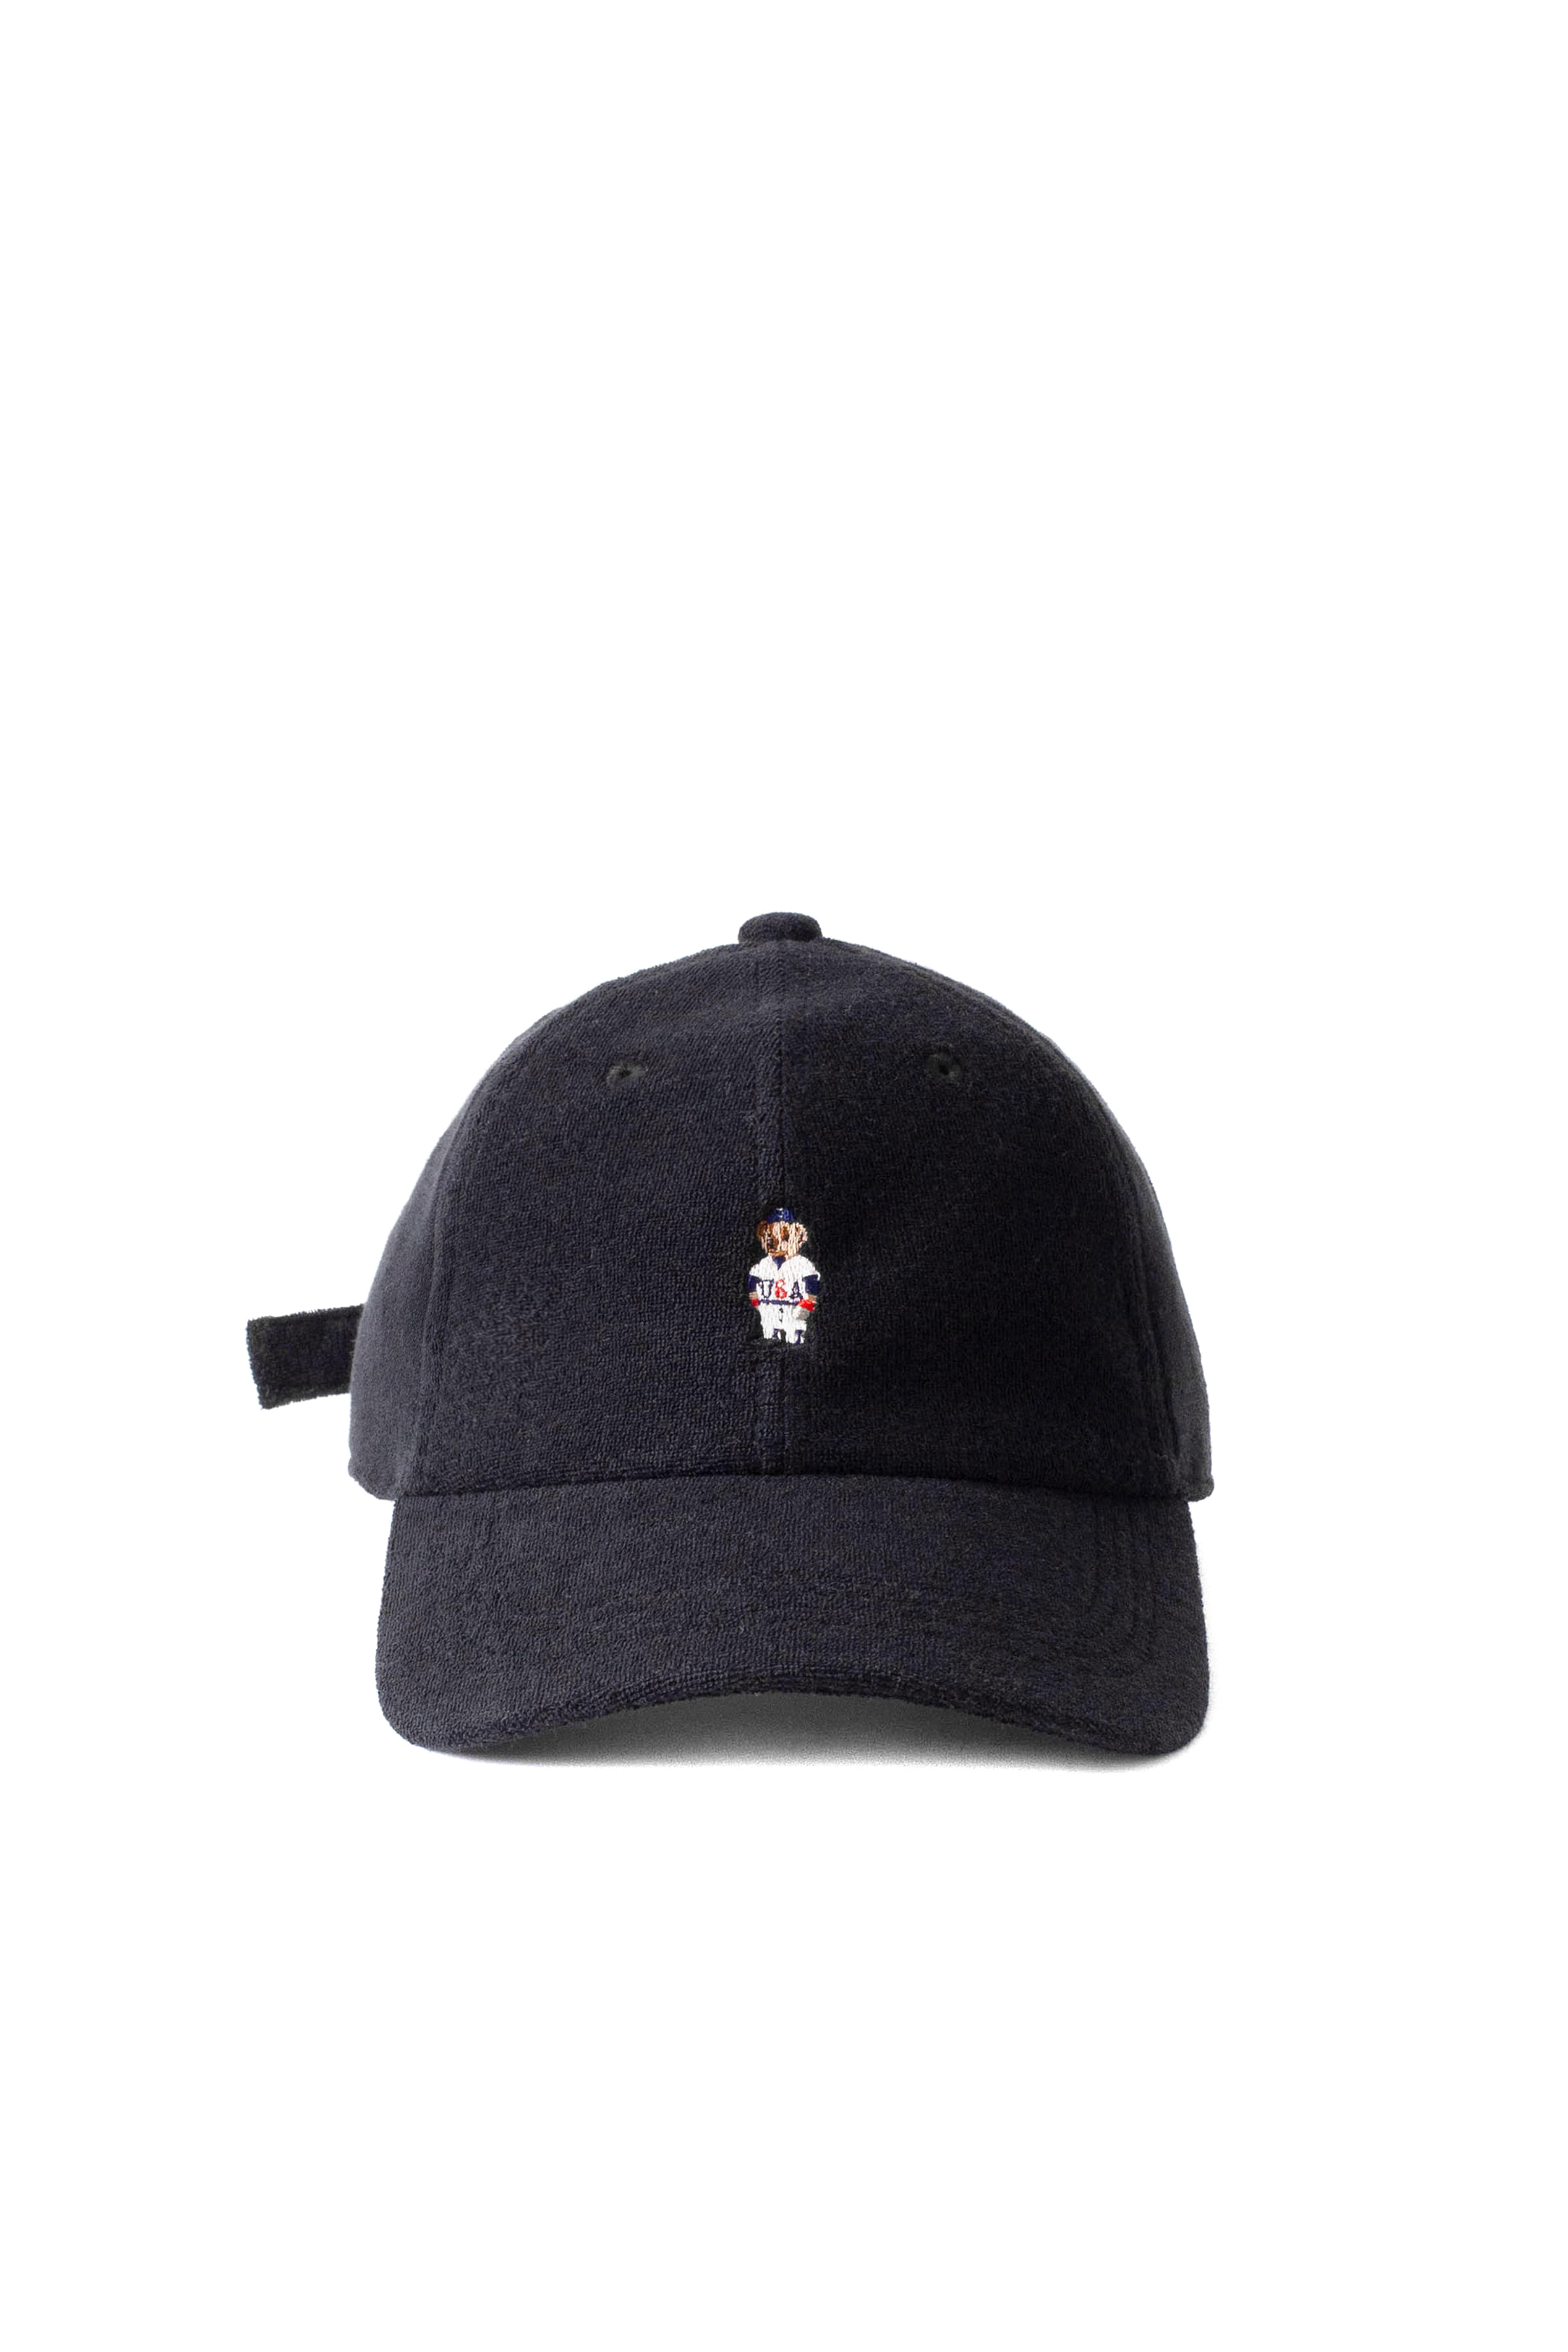 Infielder Design : Pile Bear Cap (Black)